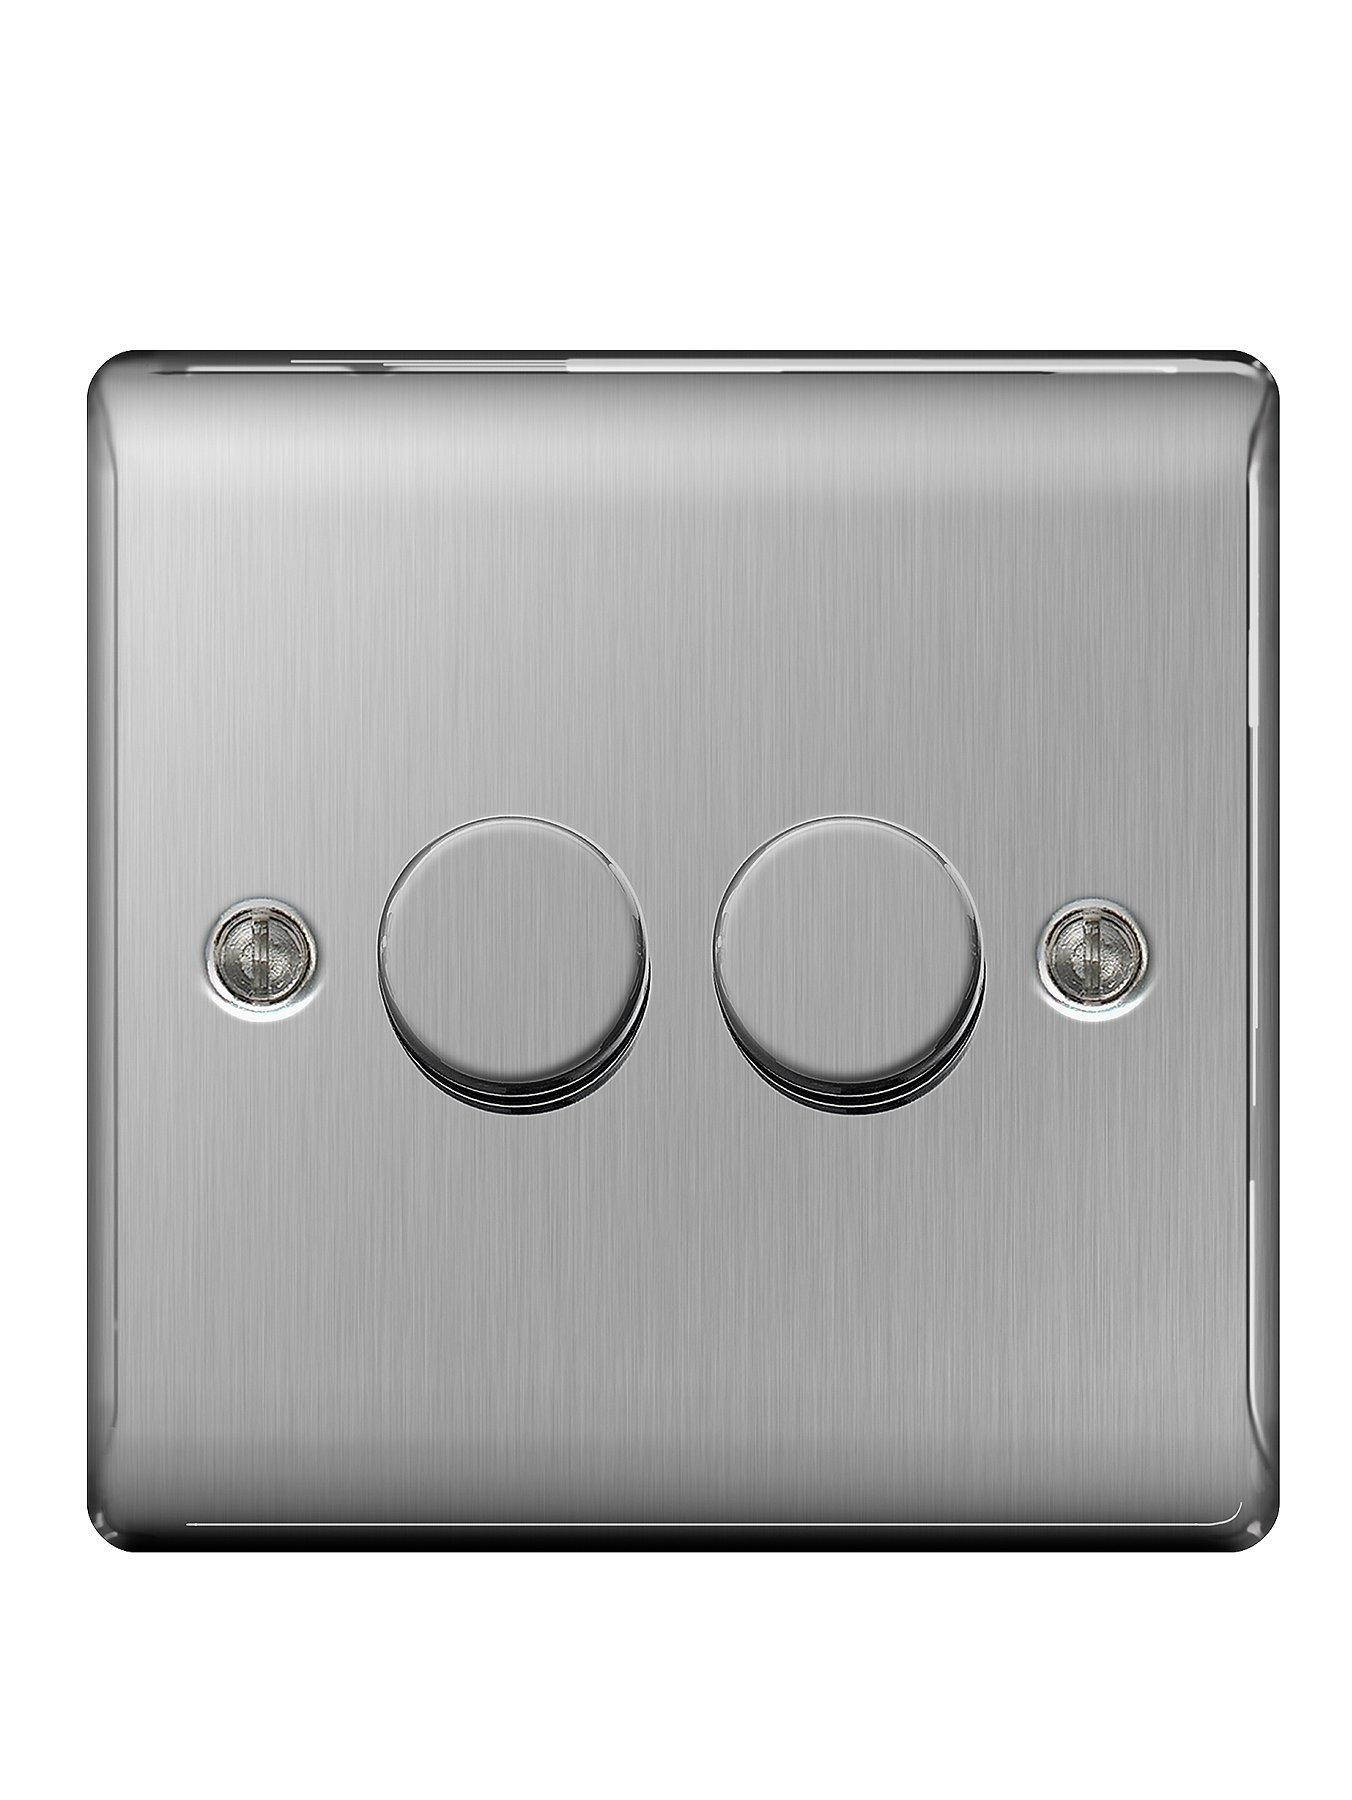 Compare cheap offers & prices of British General Brushed Steel 400 Watt 2G Push Dimmer manufactured by British General